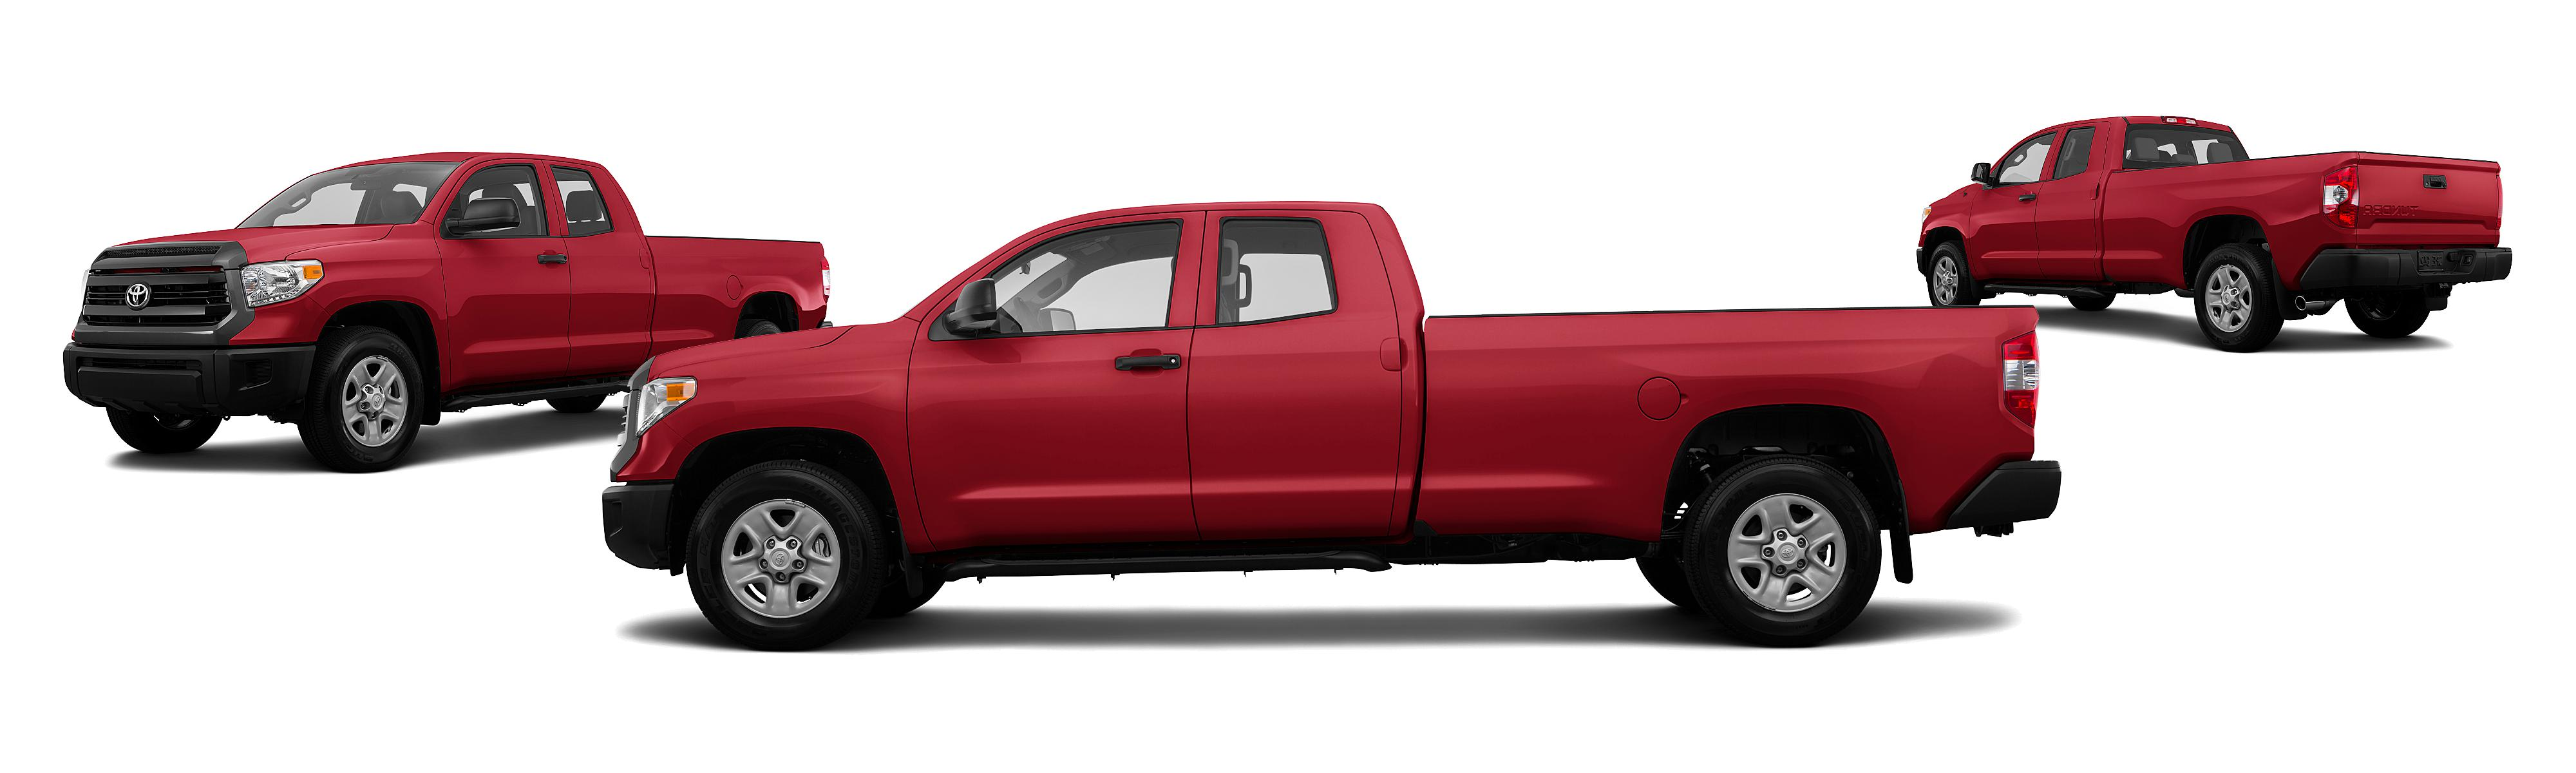 2017 toyota tundra sr5 configurations. Black Bedroom Furniture Sets. Home Design Ideas